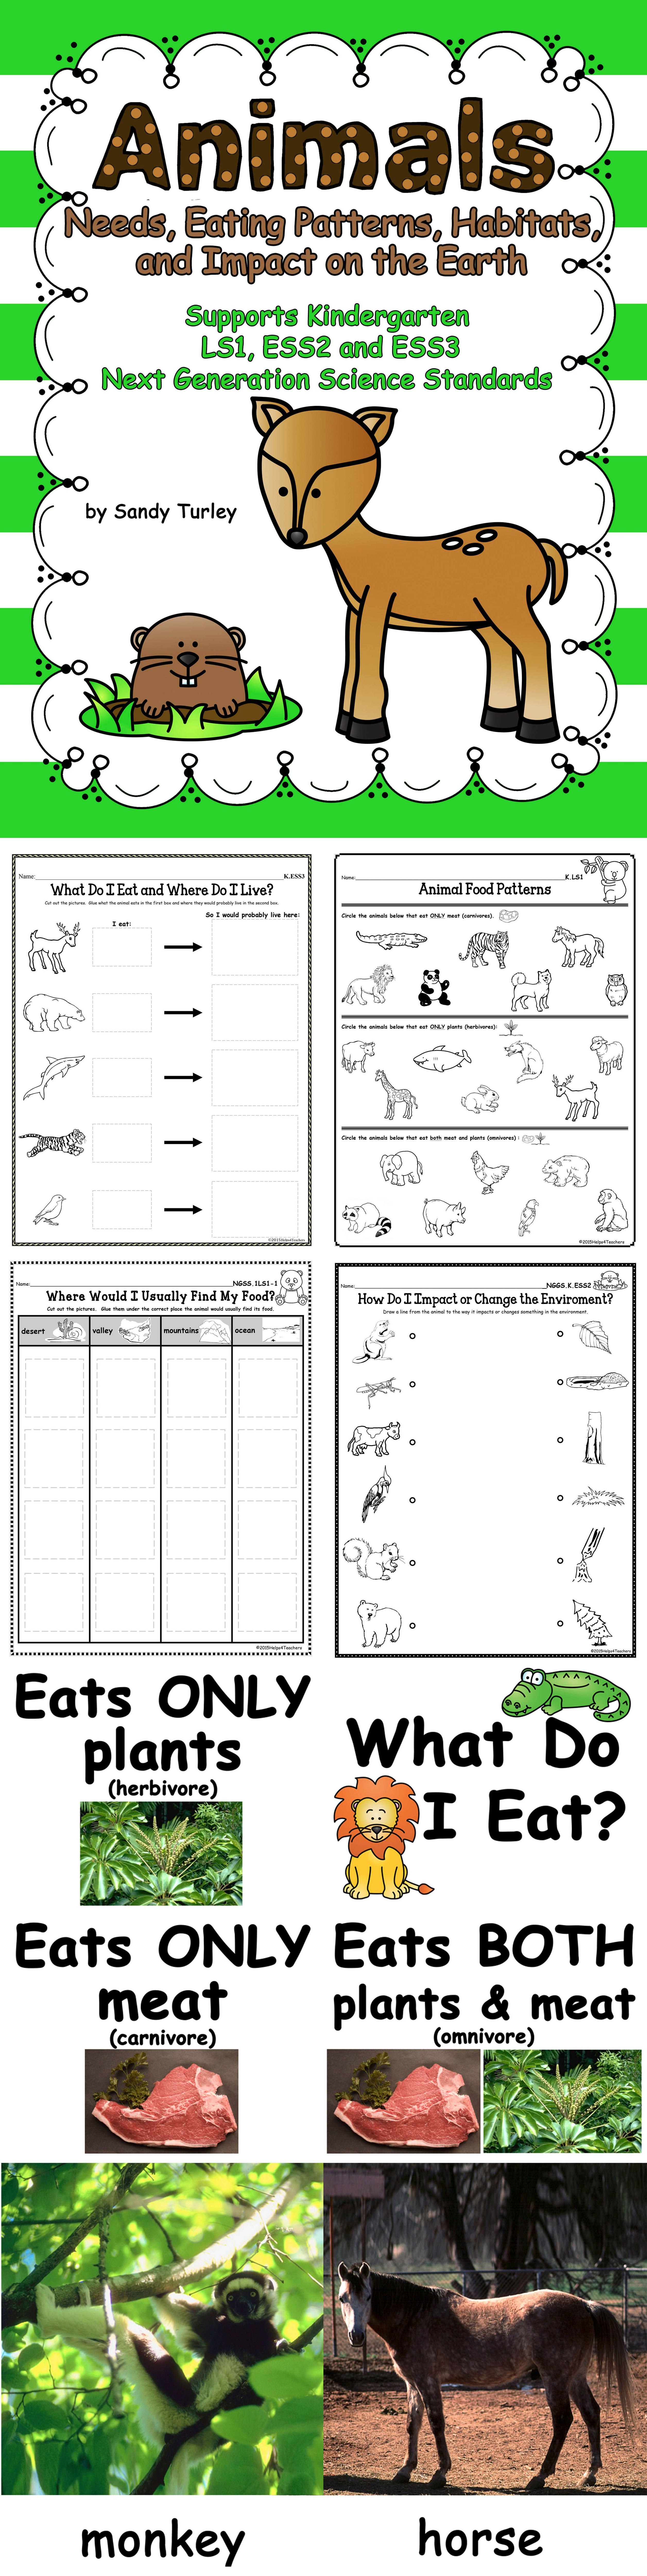 Ngss Kindergarten Ess 2 Amp 3 Animals Needs Patterns